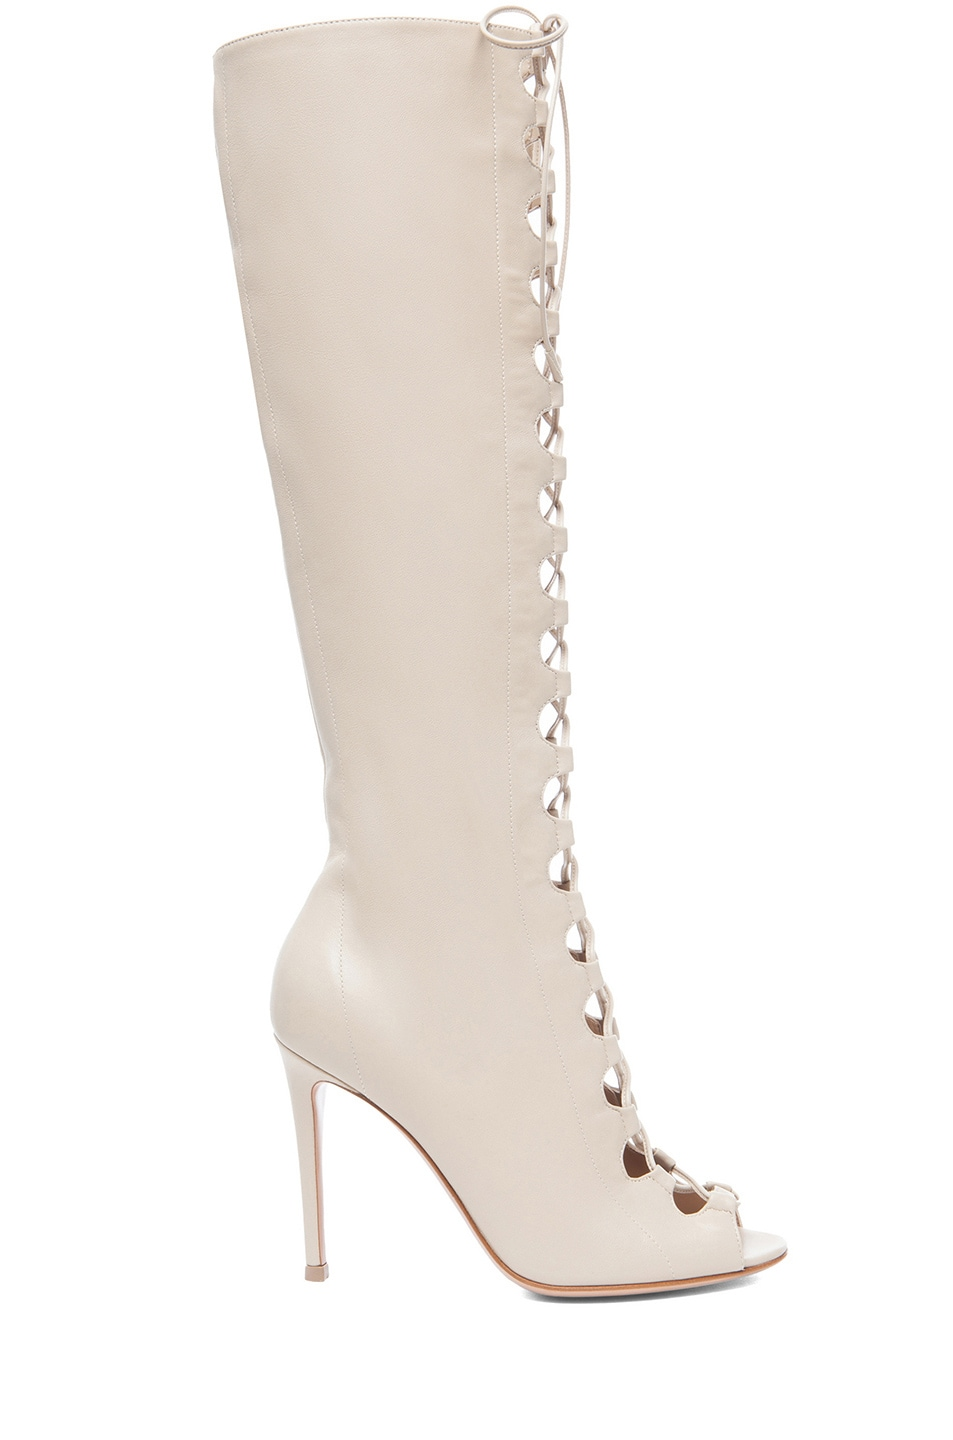 Image 1 of Gianvito Rossi Nappa Leather Lace Up Boots in Corda